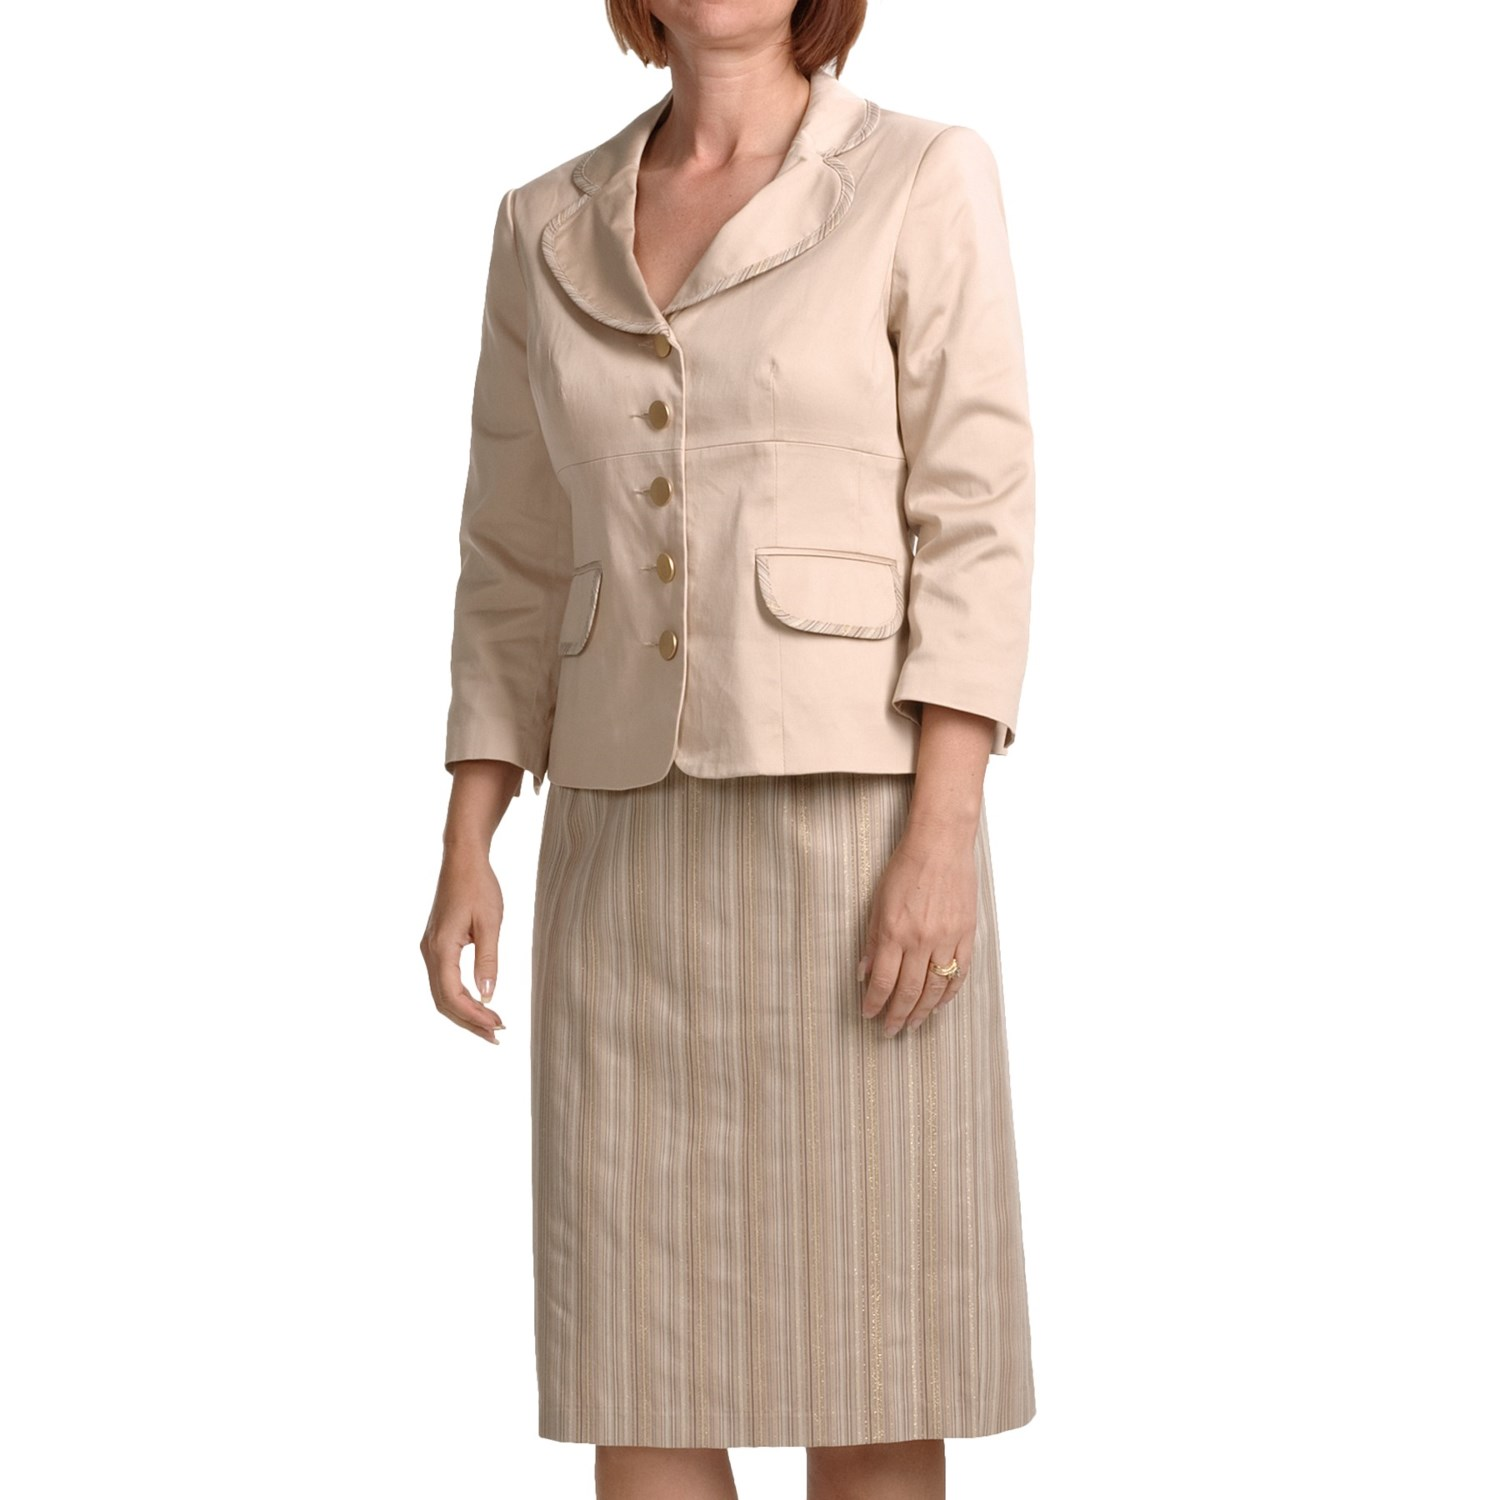 metallic skirt suit stretch cotton for